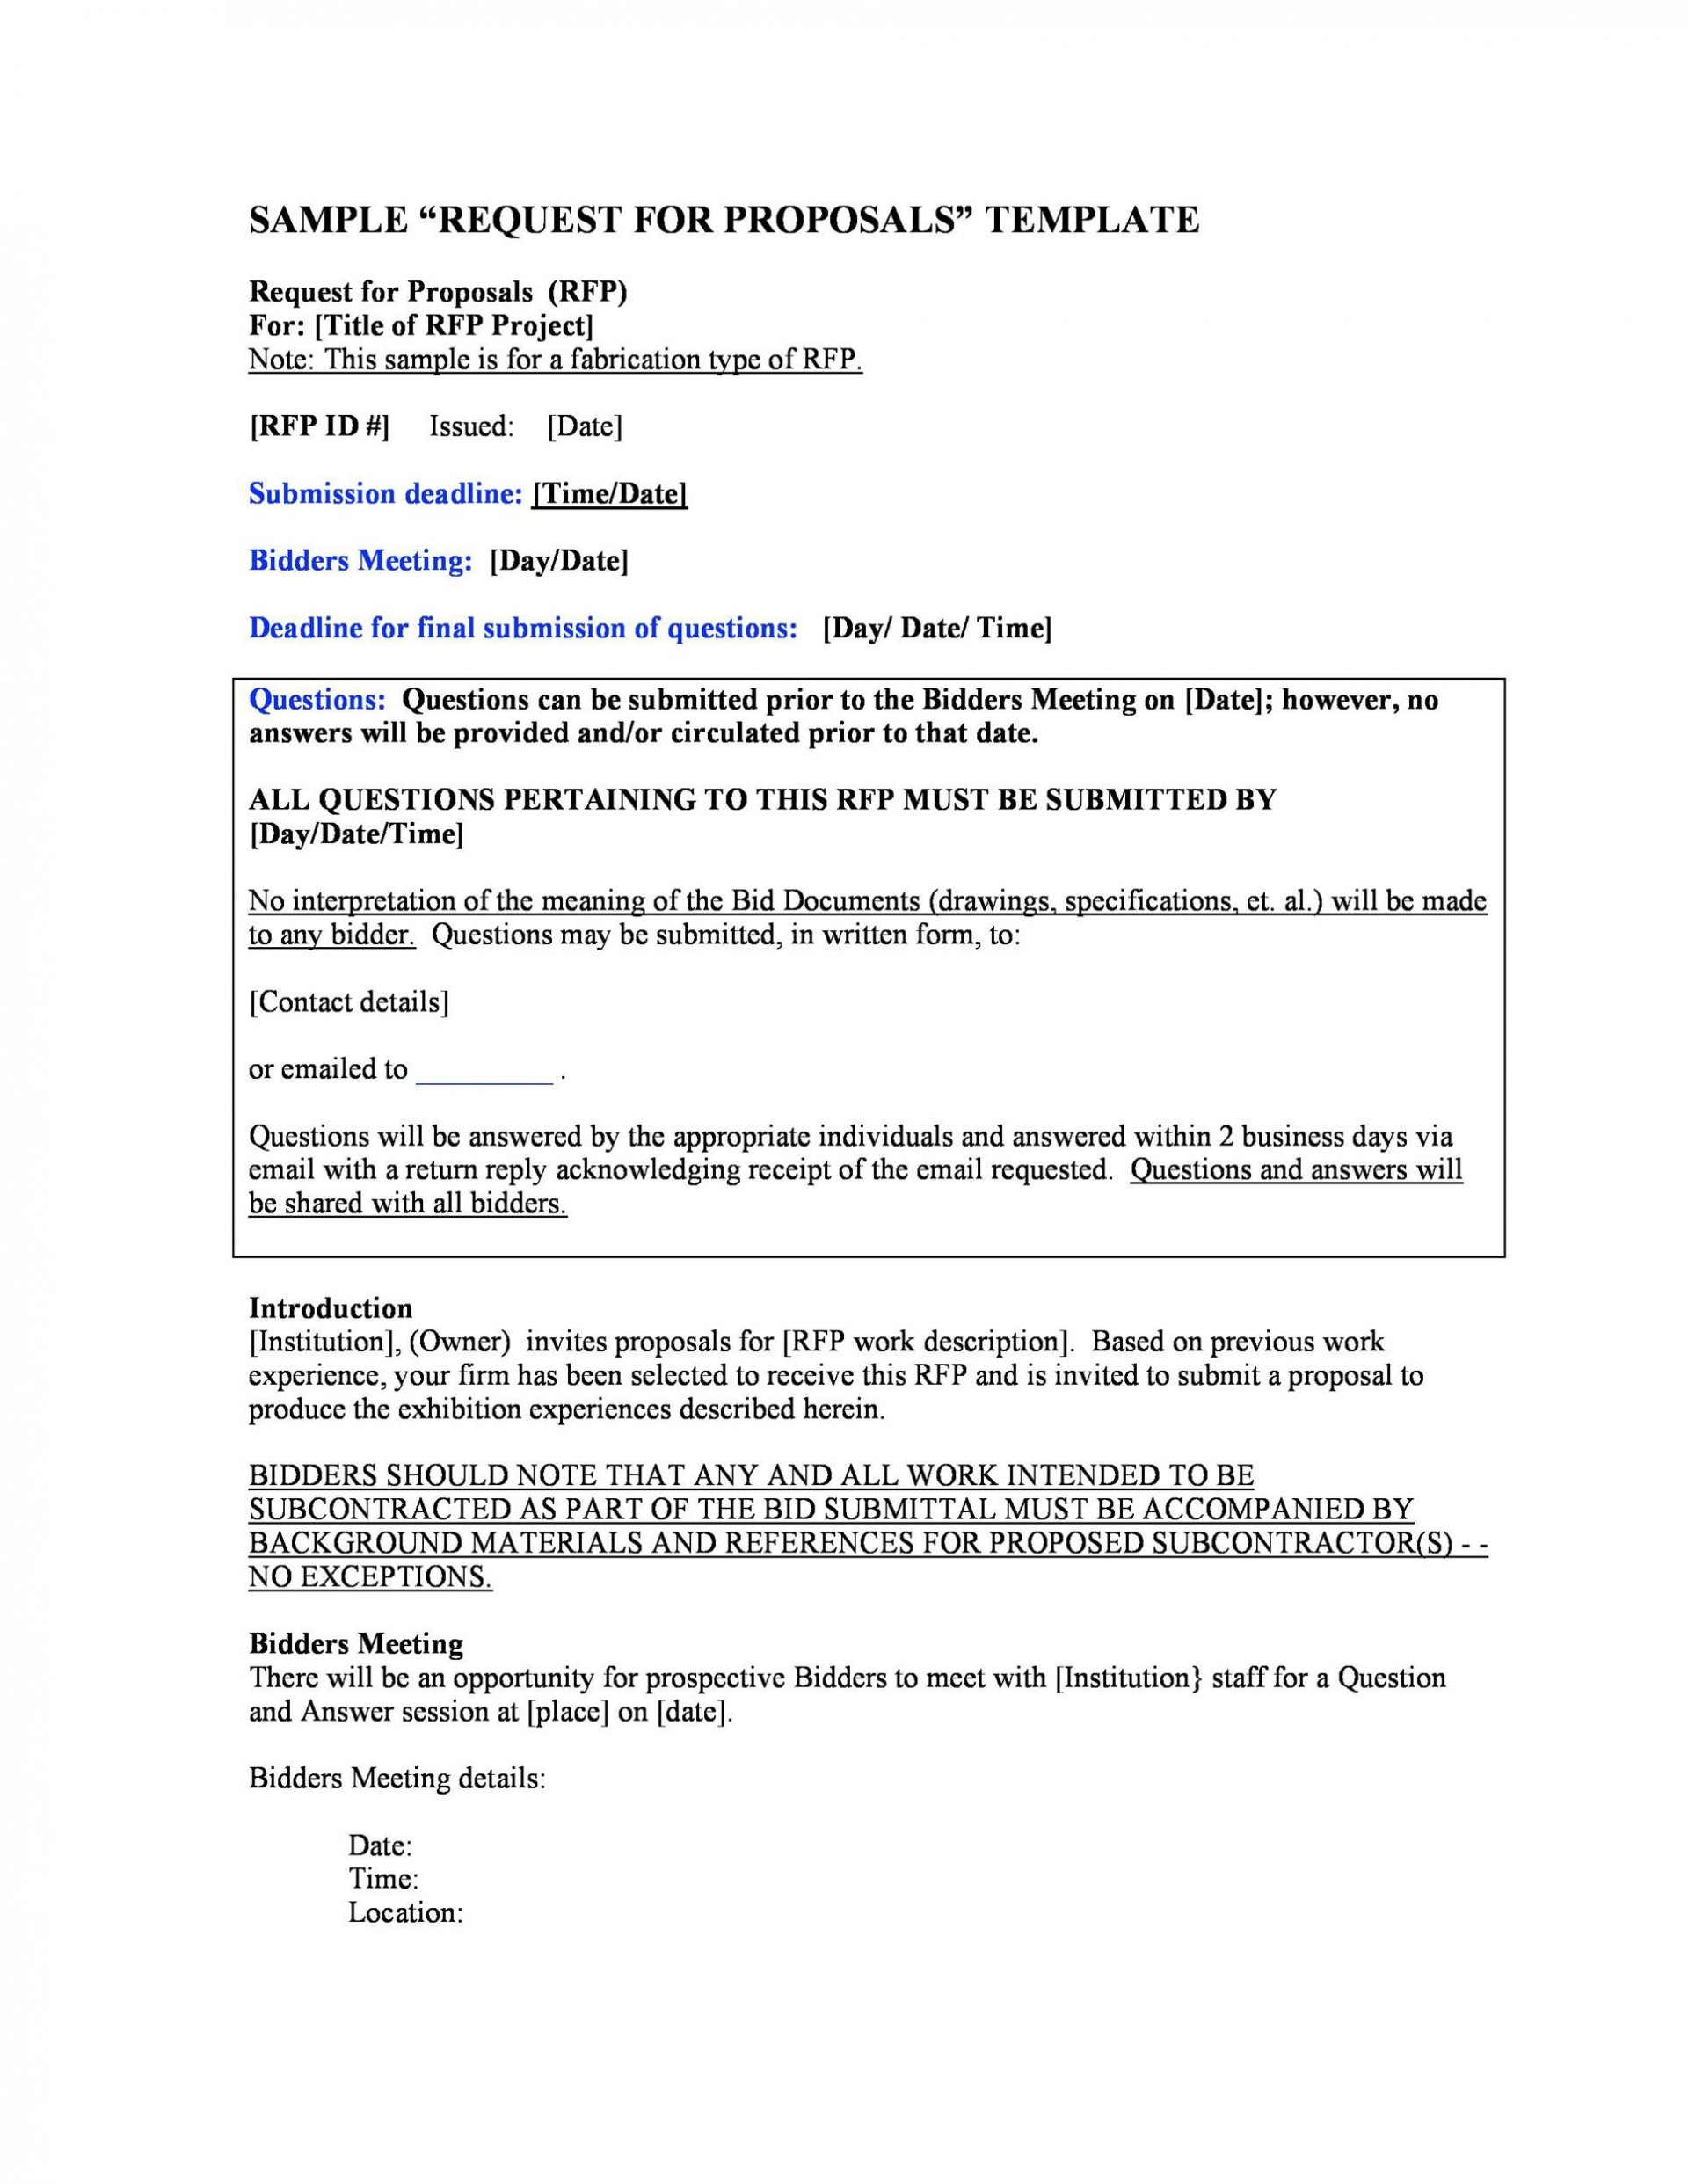 004 Awful Request For Proposal Response Word Template Image 1920